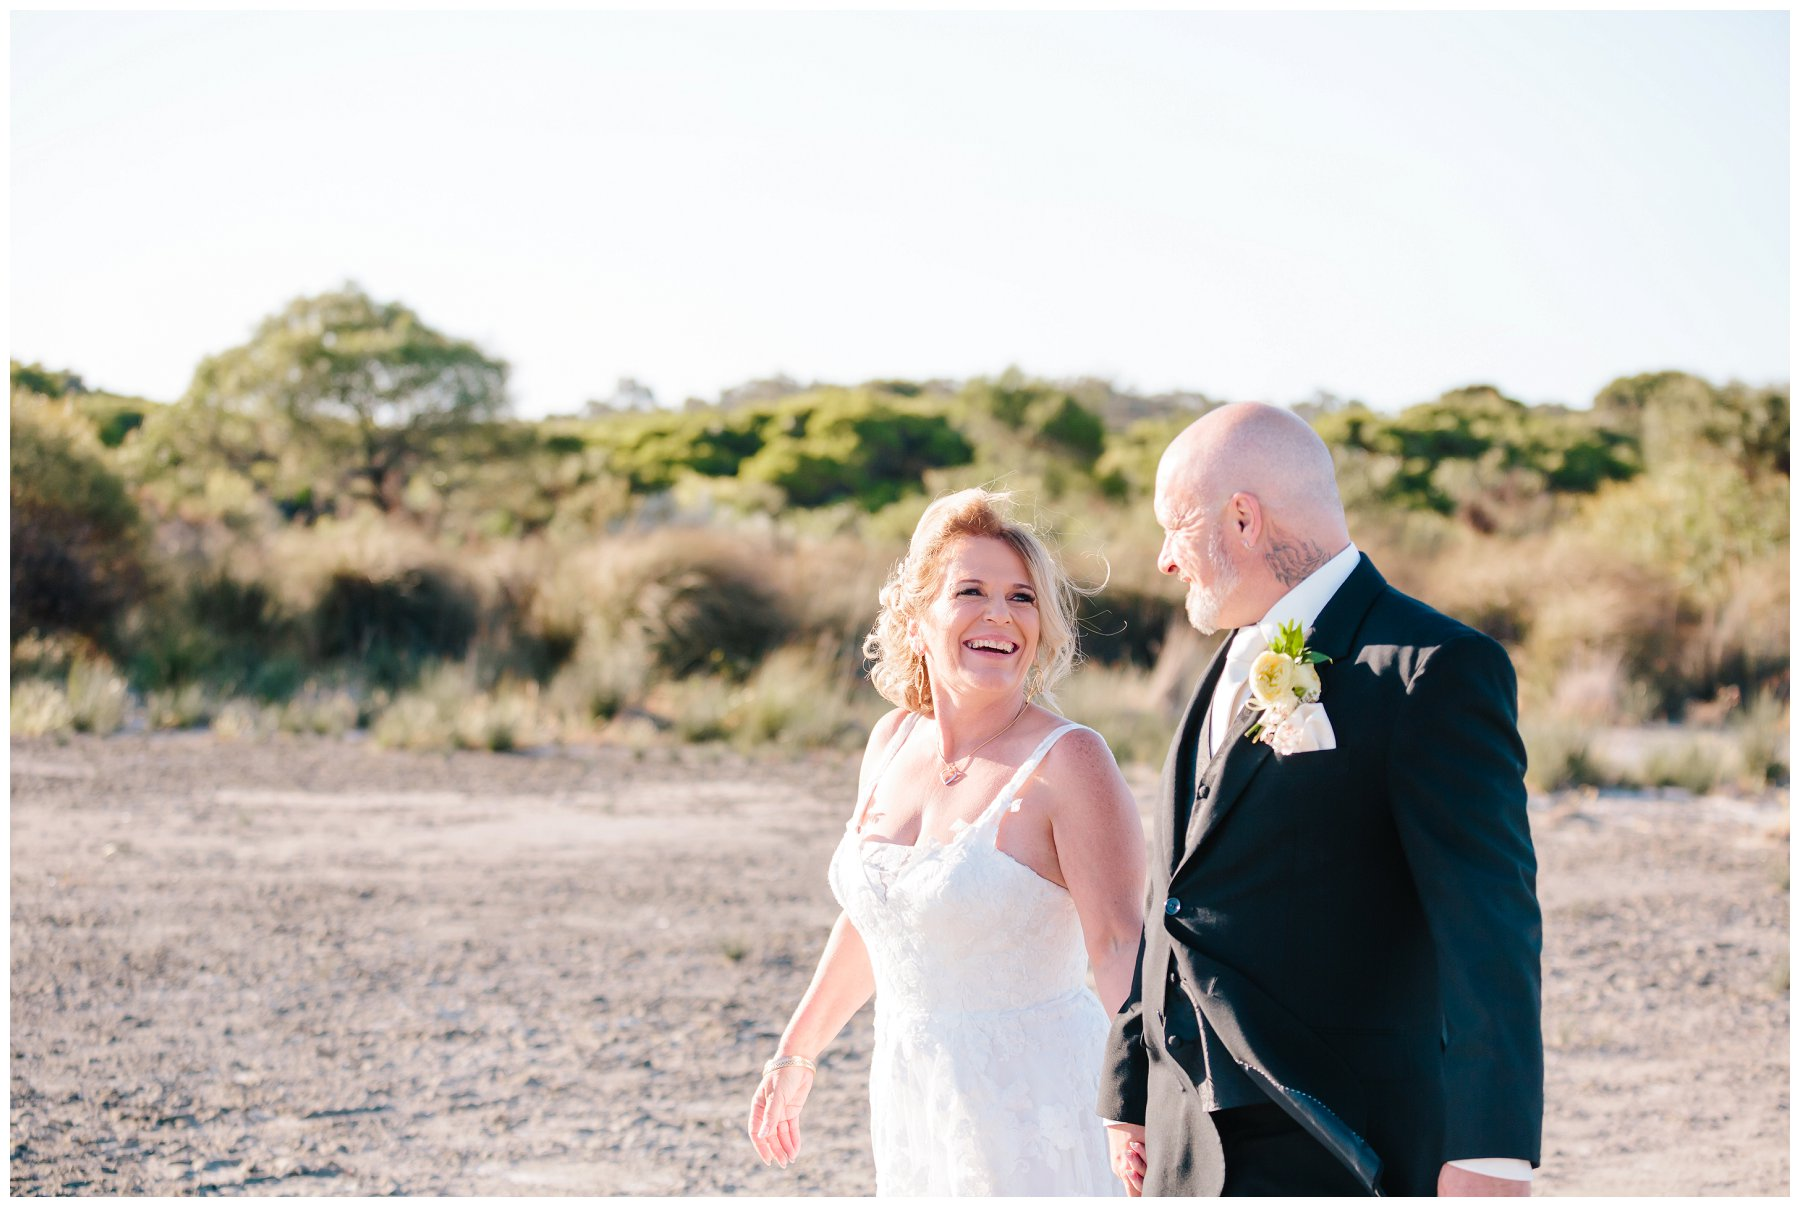 Baldivis salt lake wedding